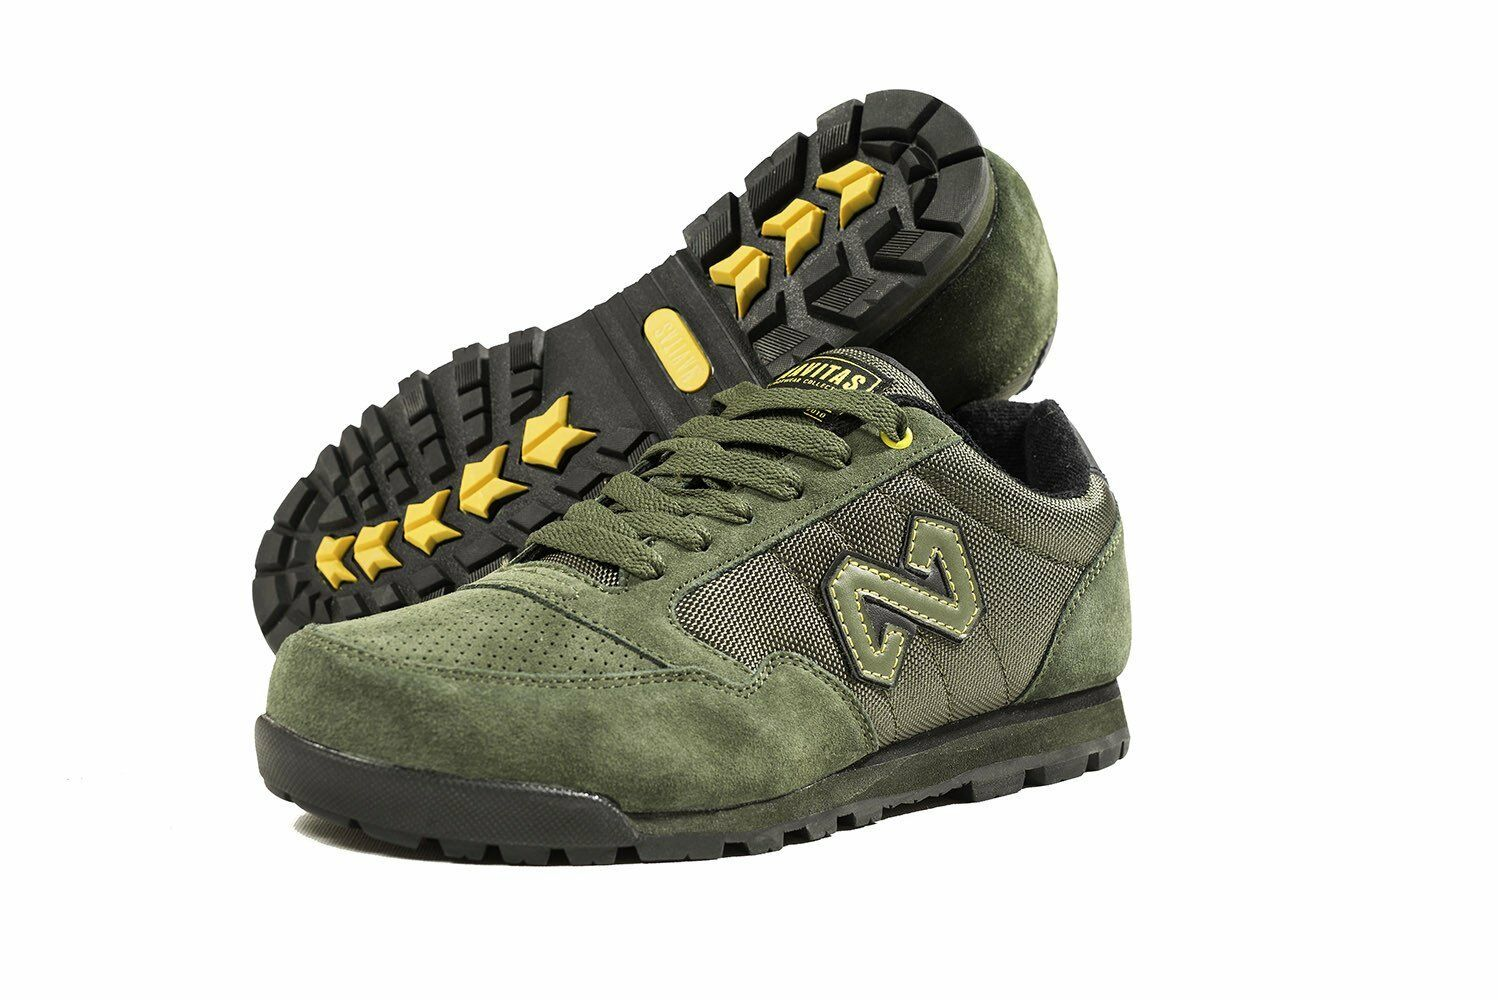 New Navitas Apparel XT1 Green Trainers shoes - All Sizes - Carp Fishing Footwear